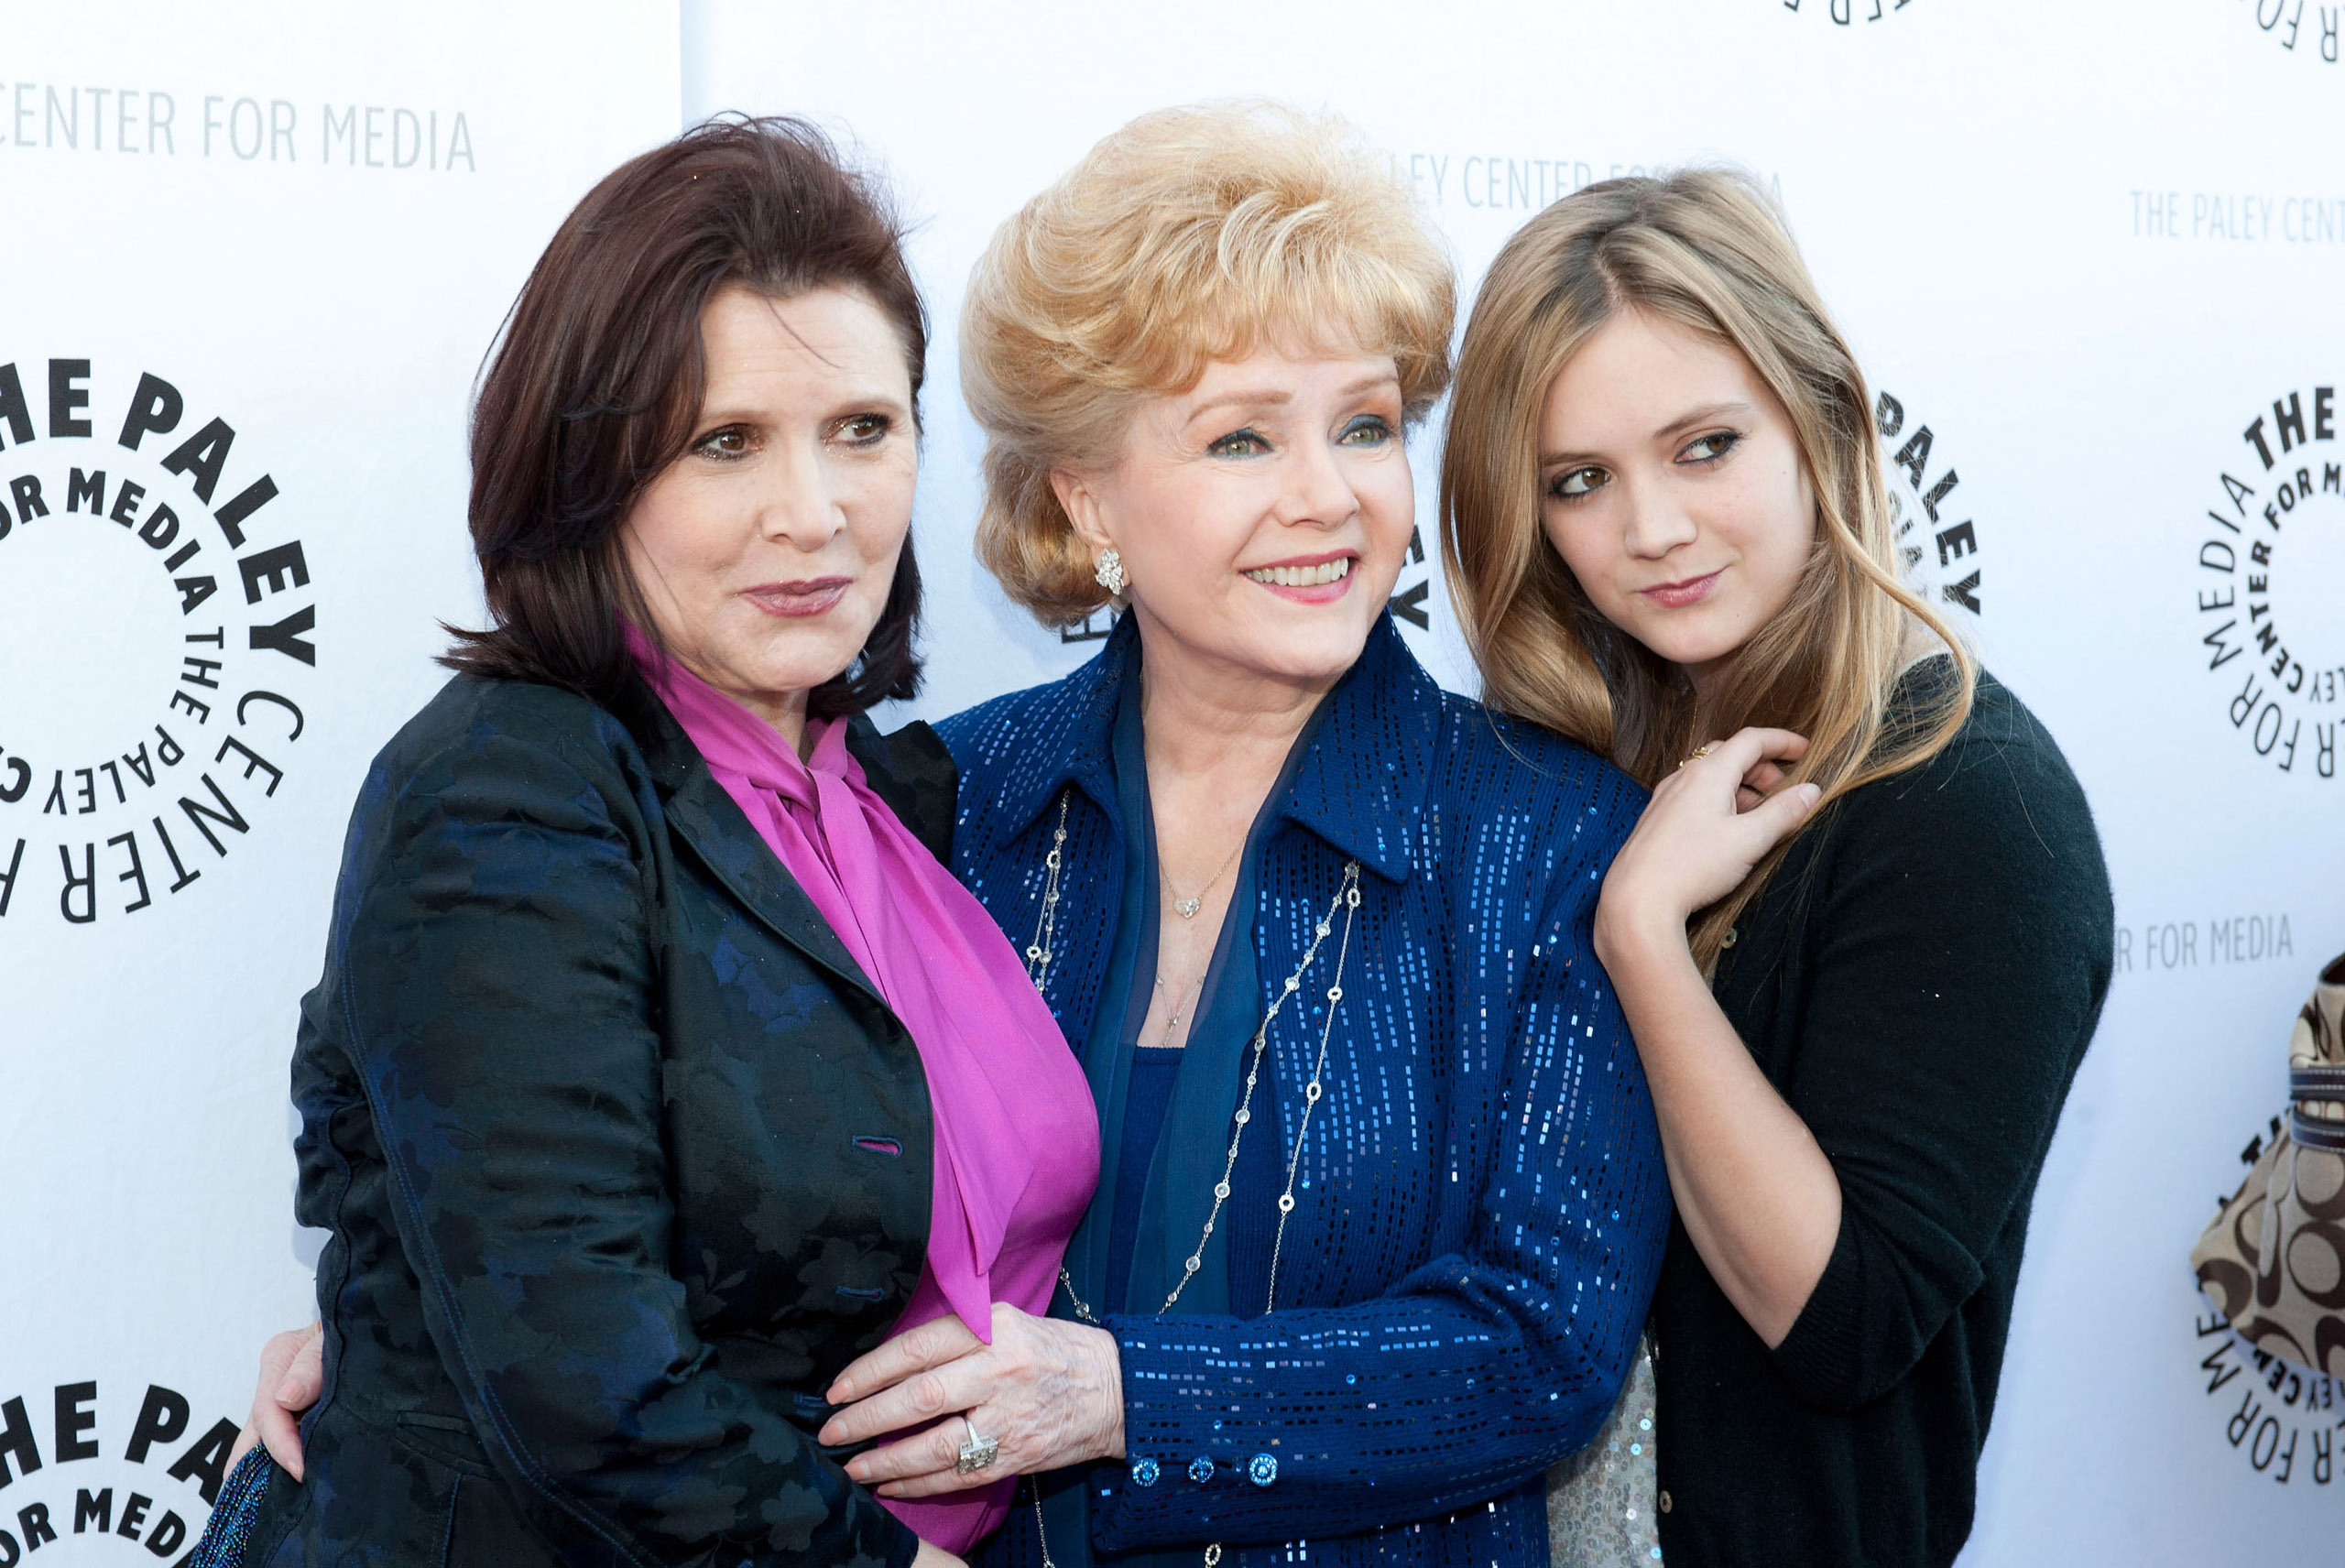 (L-R) Actress and writer Carrie Fisher, her mother Debbie Reynolds and daughter Billie Lourd arrive at a reception at the Paley Center for Media celebrating the exhibit  Debbie Reynolds' Hollywood Memorabilia, June 7, 2011 in Beverly Hills, California.